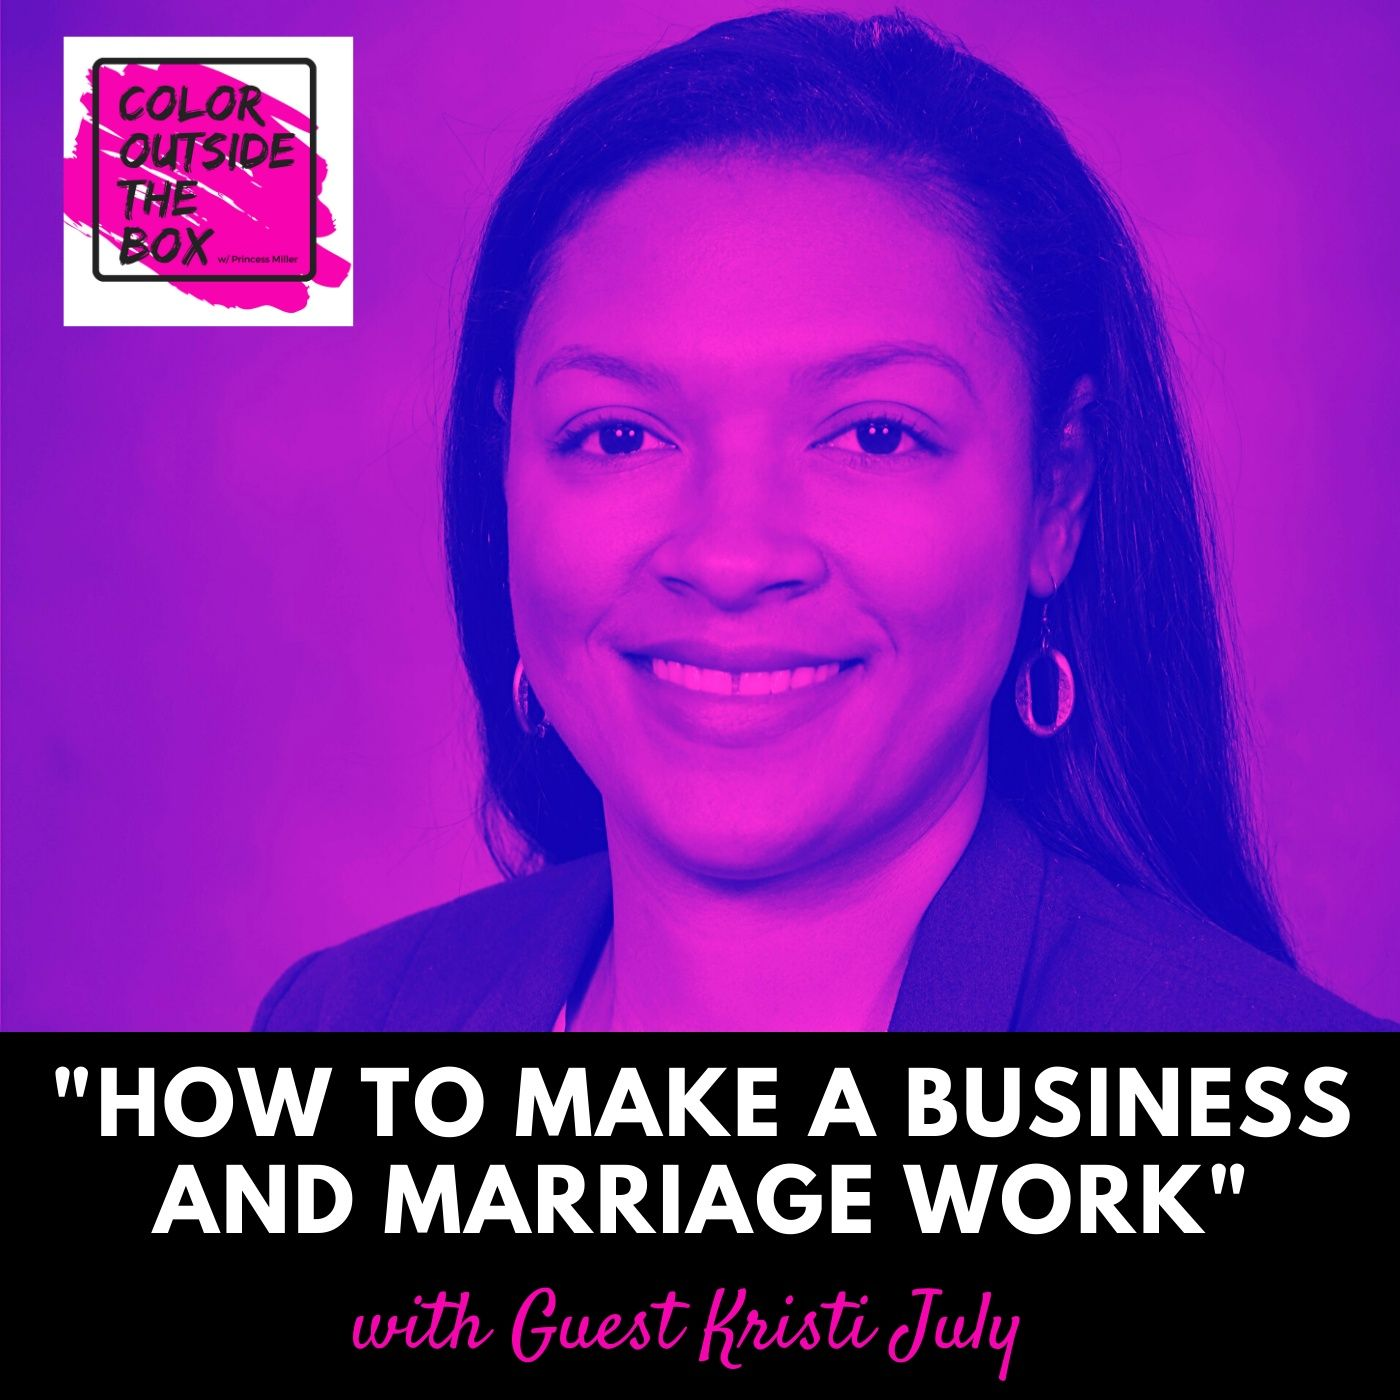 How to Make a Business and Marriage Work with guest Mrs. Kristi July